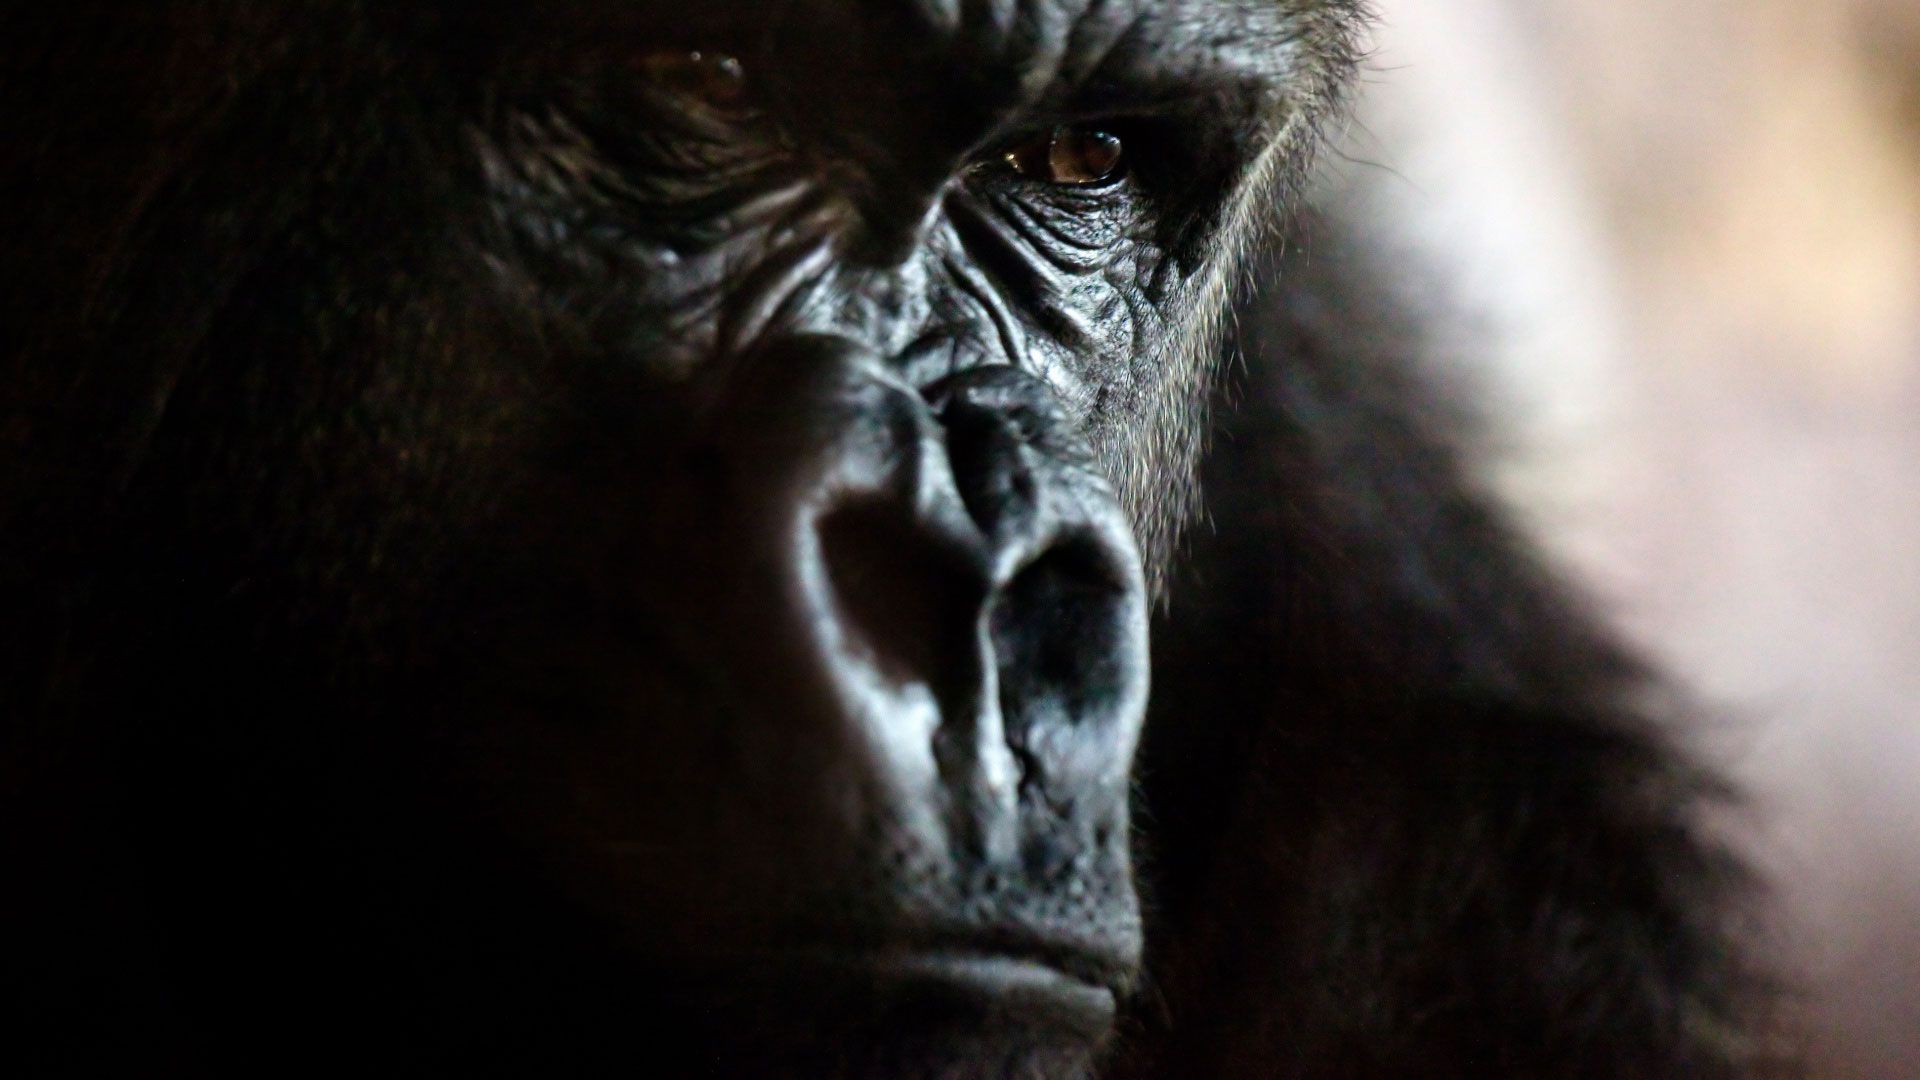 Face Gorilla Photo